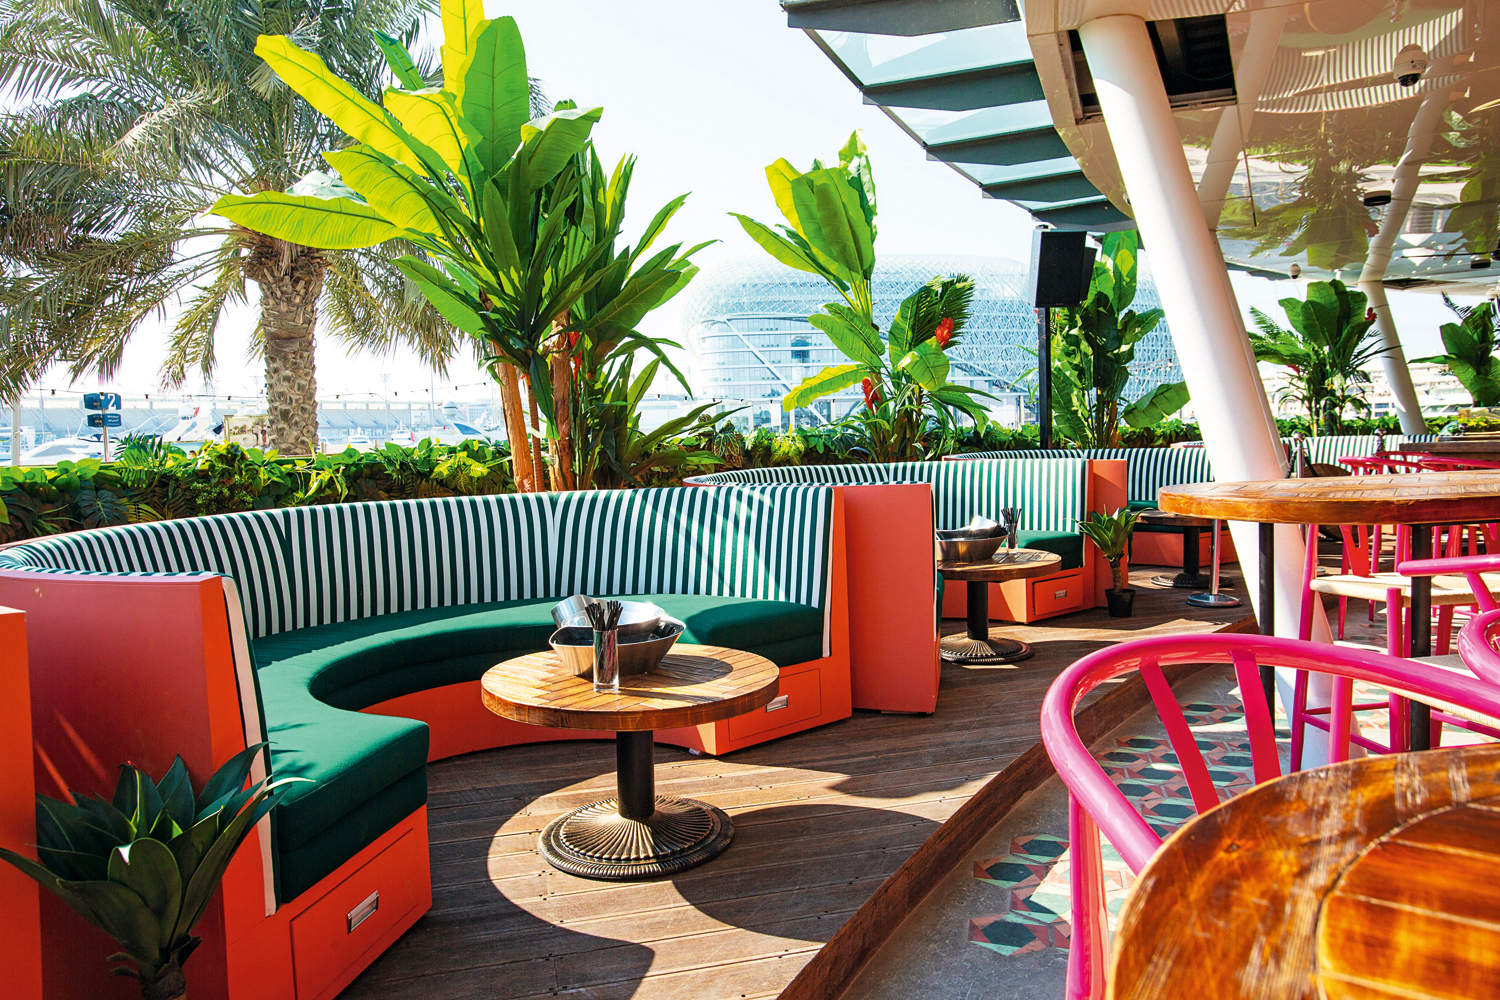 31 Amazing Outdoor Bars To Try In Abu Dhabi Bars Nightlife Time Out Abu Dhabi